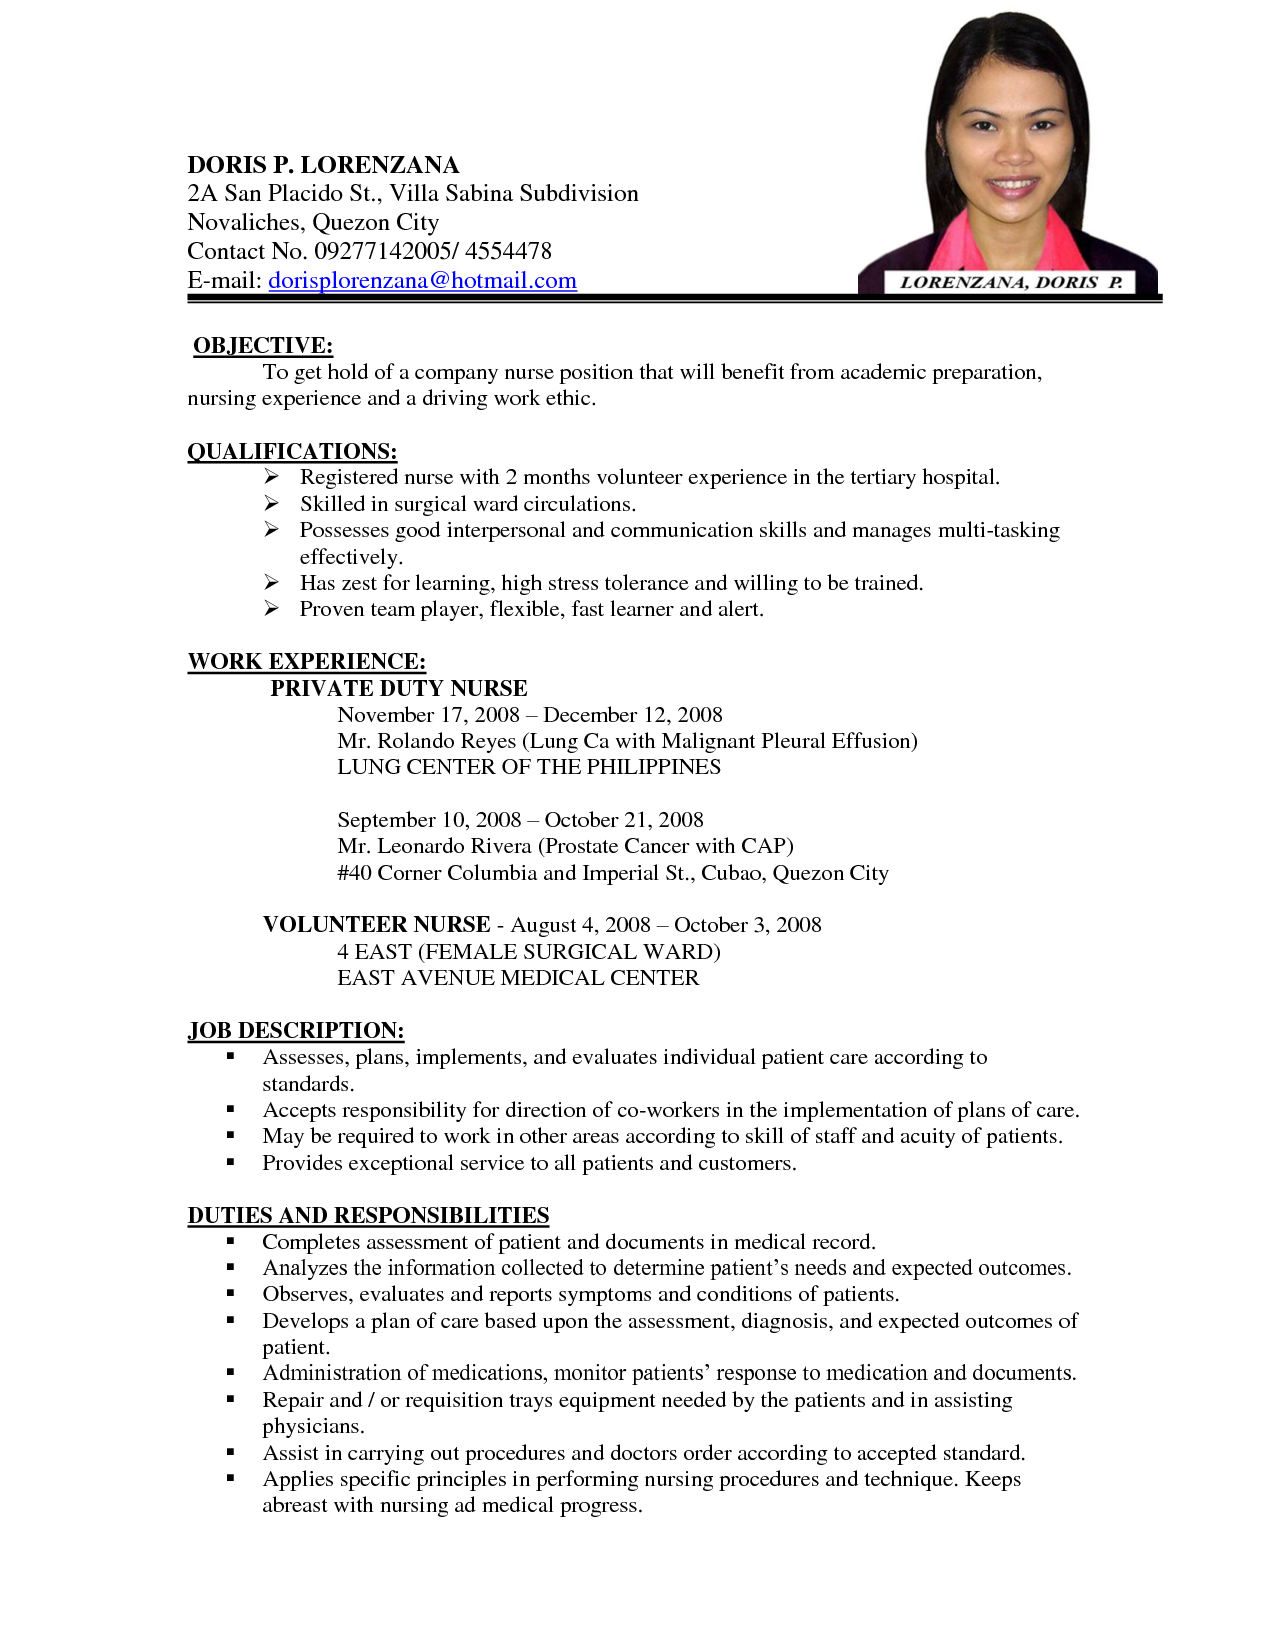 Get Premium Nursing Resume Templates Rn Resume Builder Nicu Rn New Graduate Nursing  Resume Sample Resumes